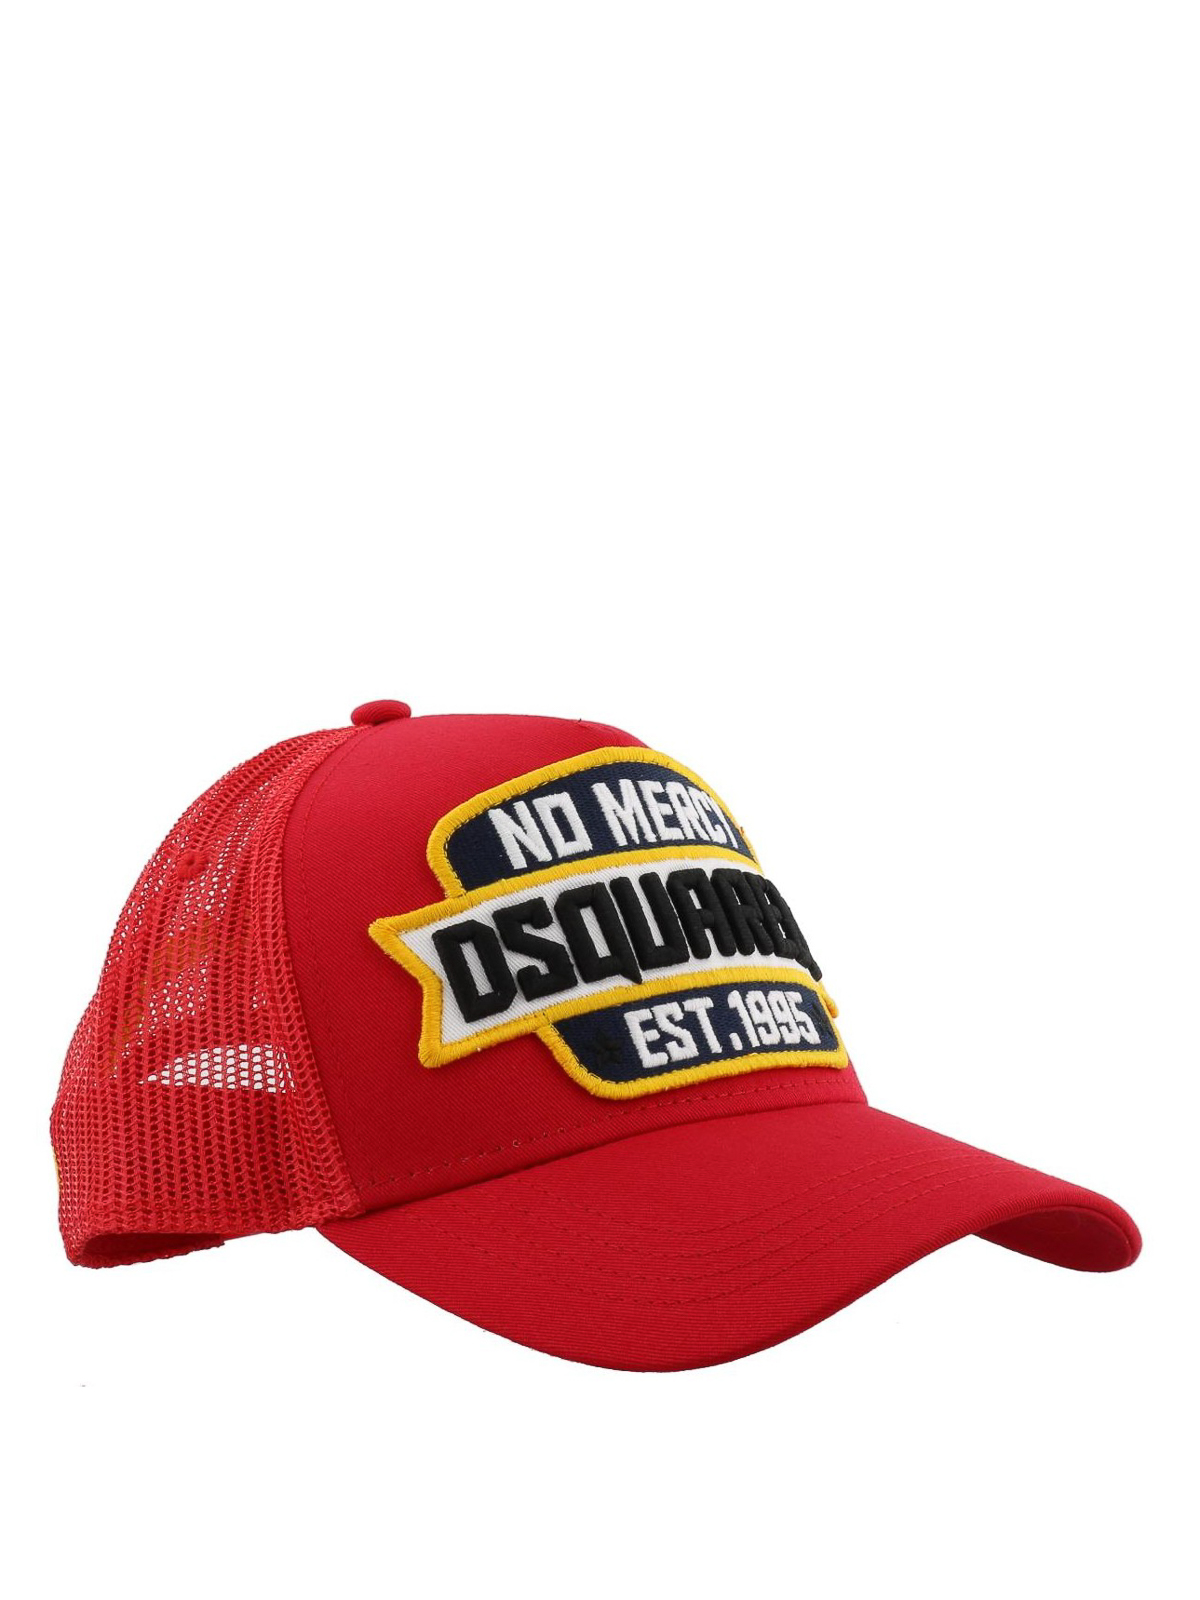 75293ef26 Dsquared2 - No Mercy red baseball cap - hats & caps - BCM0089 ...